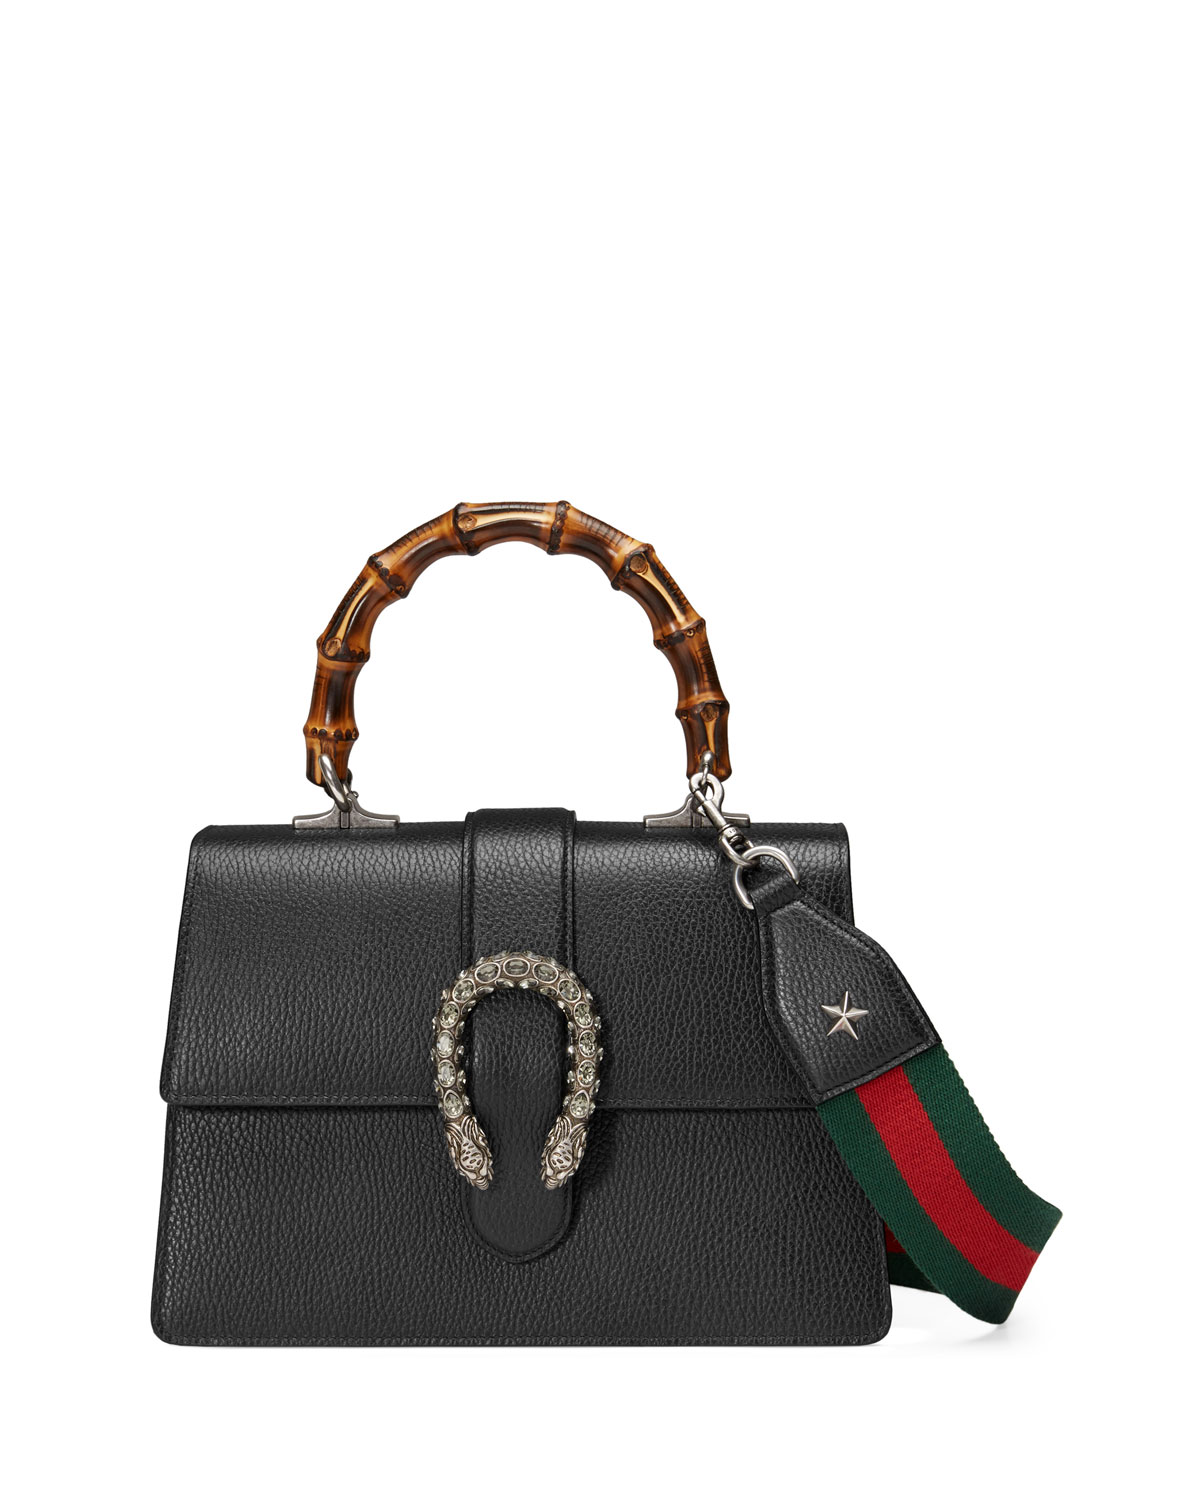 524f22d919d Gucci Dionysus Small Leather Top-Handle Bag